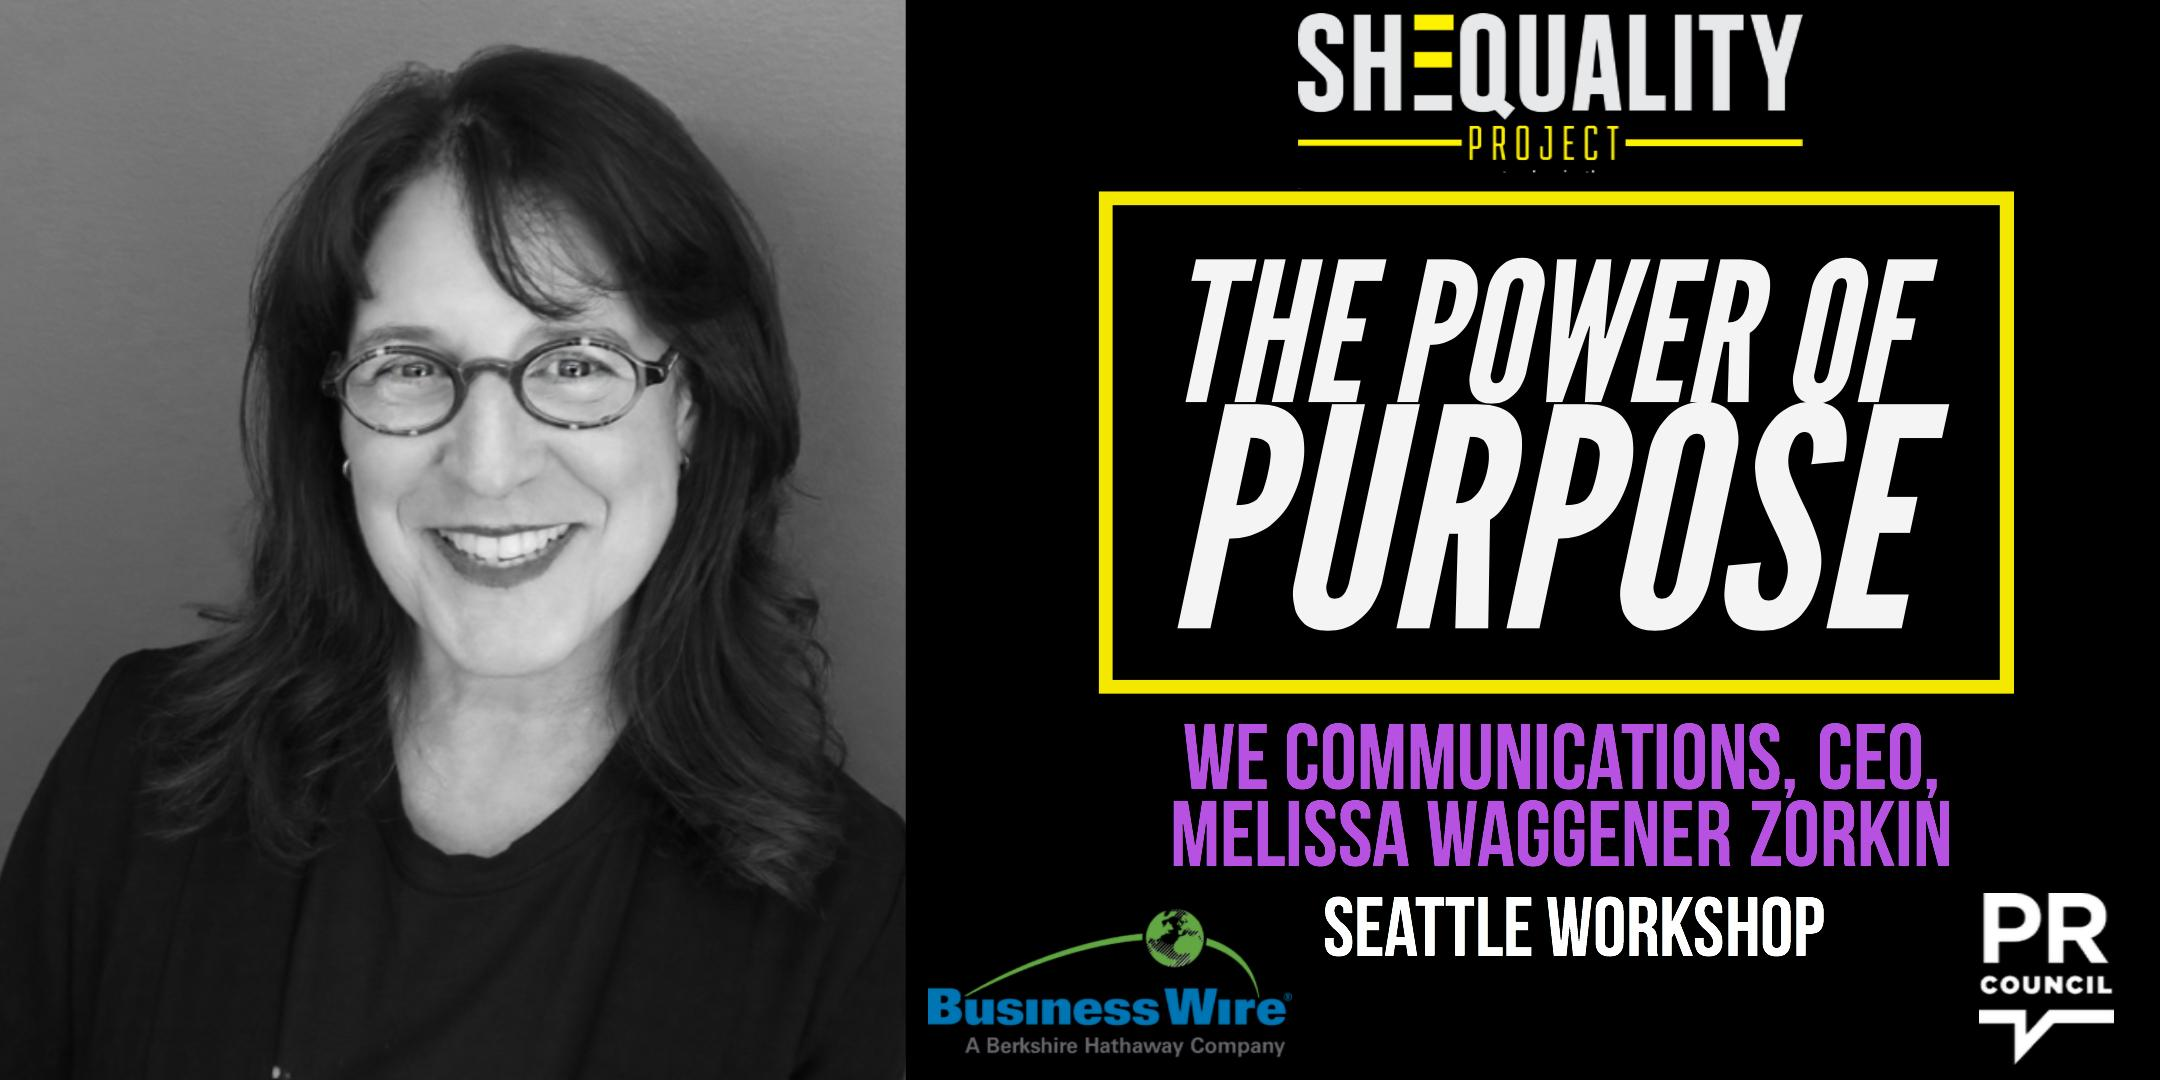 SHEQUALITY Workshop: The Power of Purpose